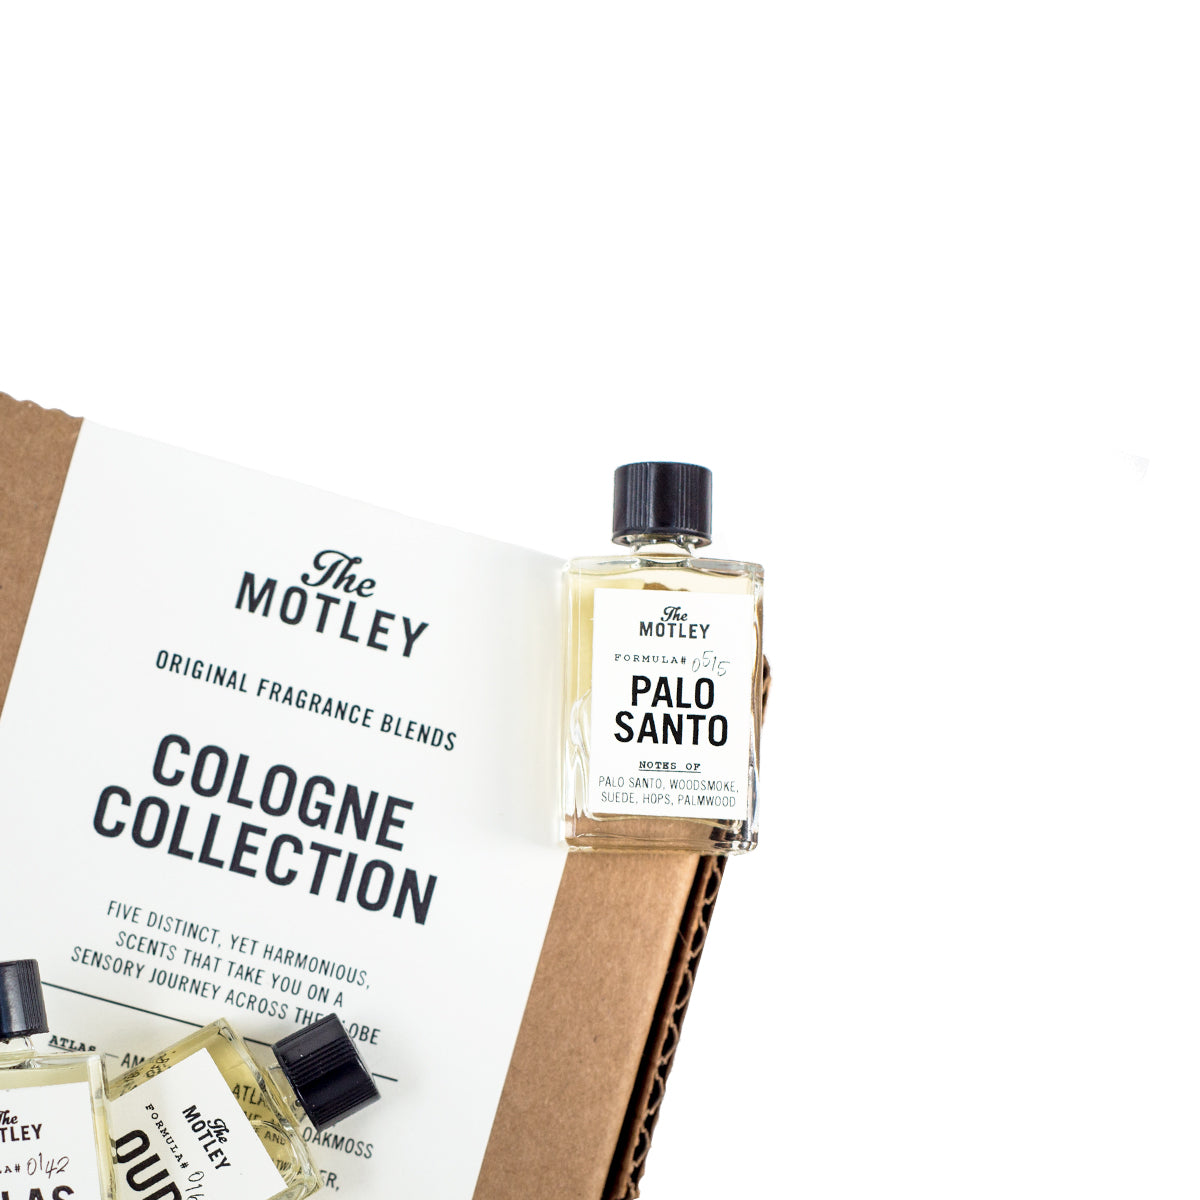 The Motley Cologne Collection